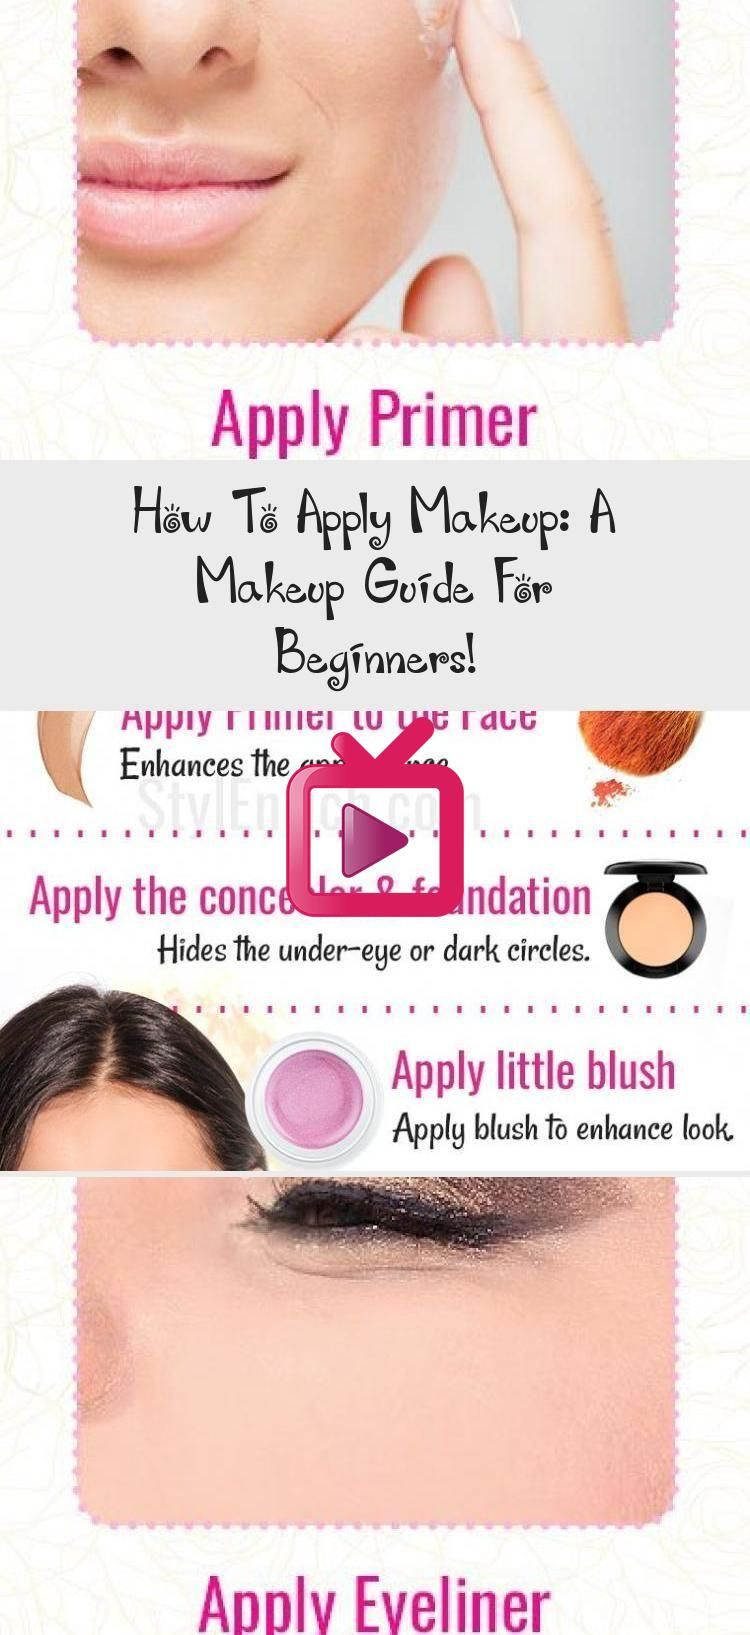 How To Apply Makeup A Makeup Guide For Beginners Form Glammakeuptutorial In 2020 How To Apply Makeup Makeup Guide Makeup For Beginners